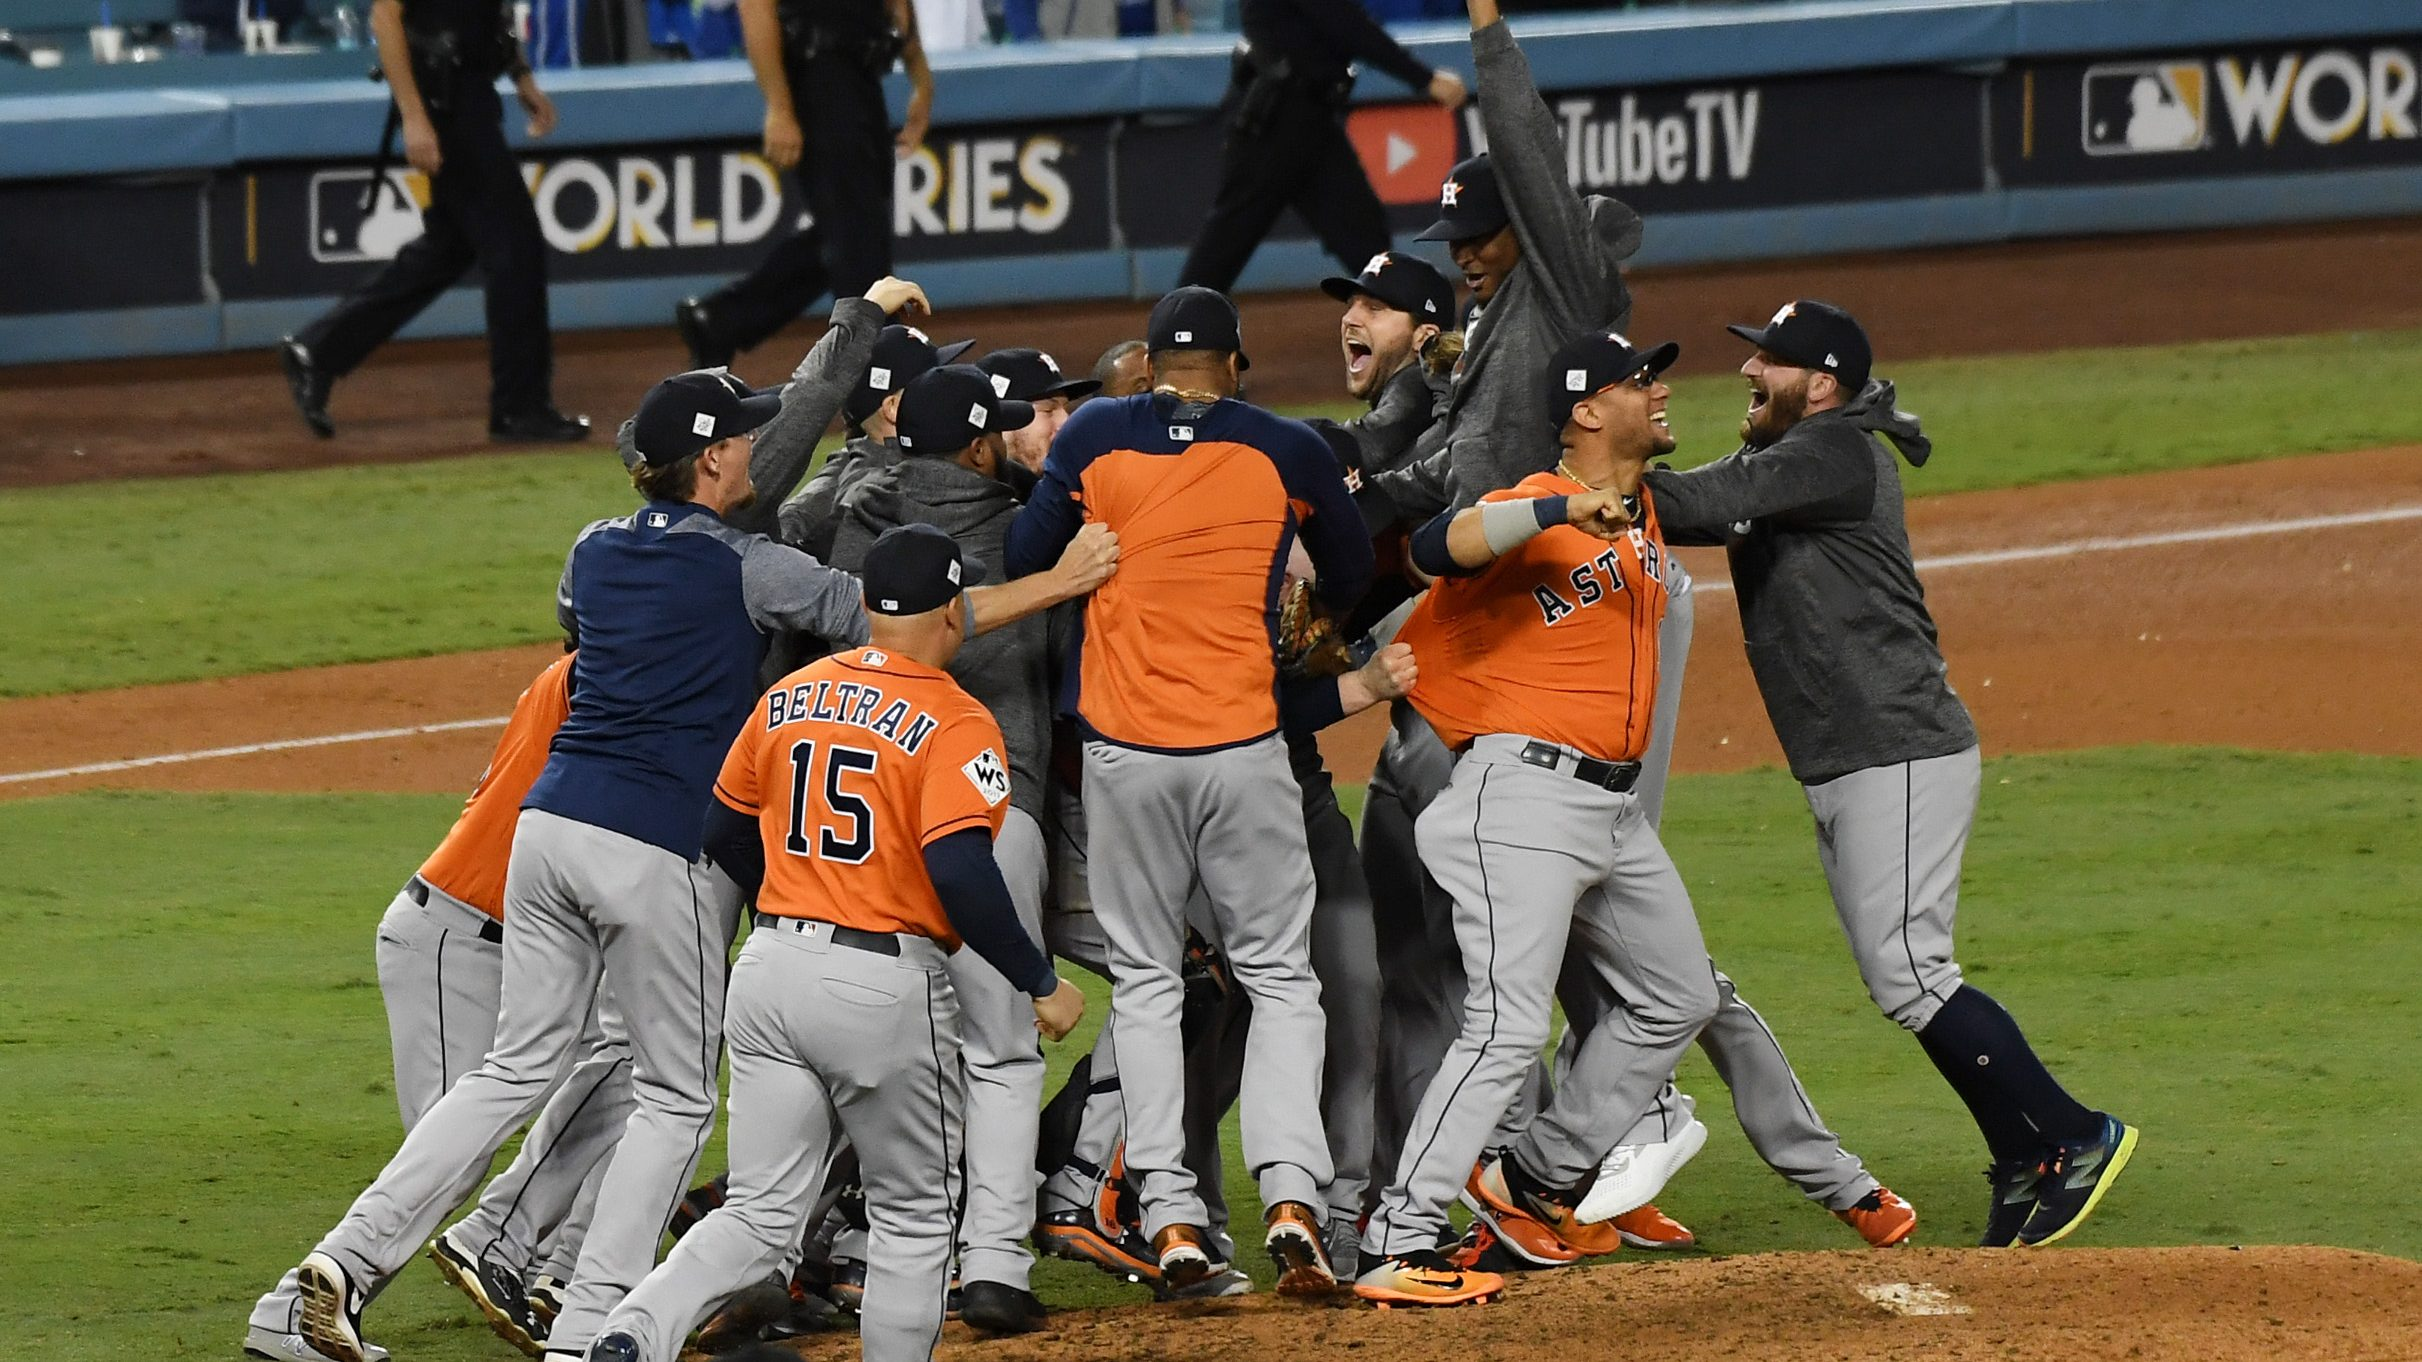 Nov 1, 2017; Los Angeles, CA, USA; The Houston Astros celebrate defeating the Los Angeles Dodgers in game seven to win the 2017 World Series at Dodger Stadium.